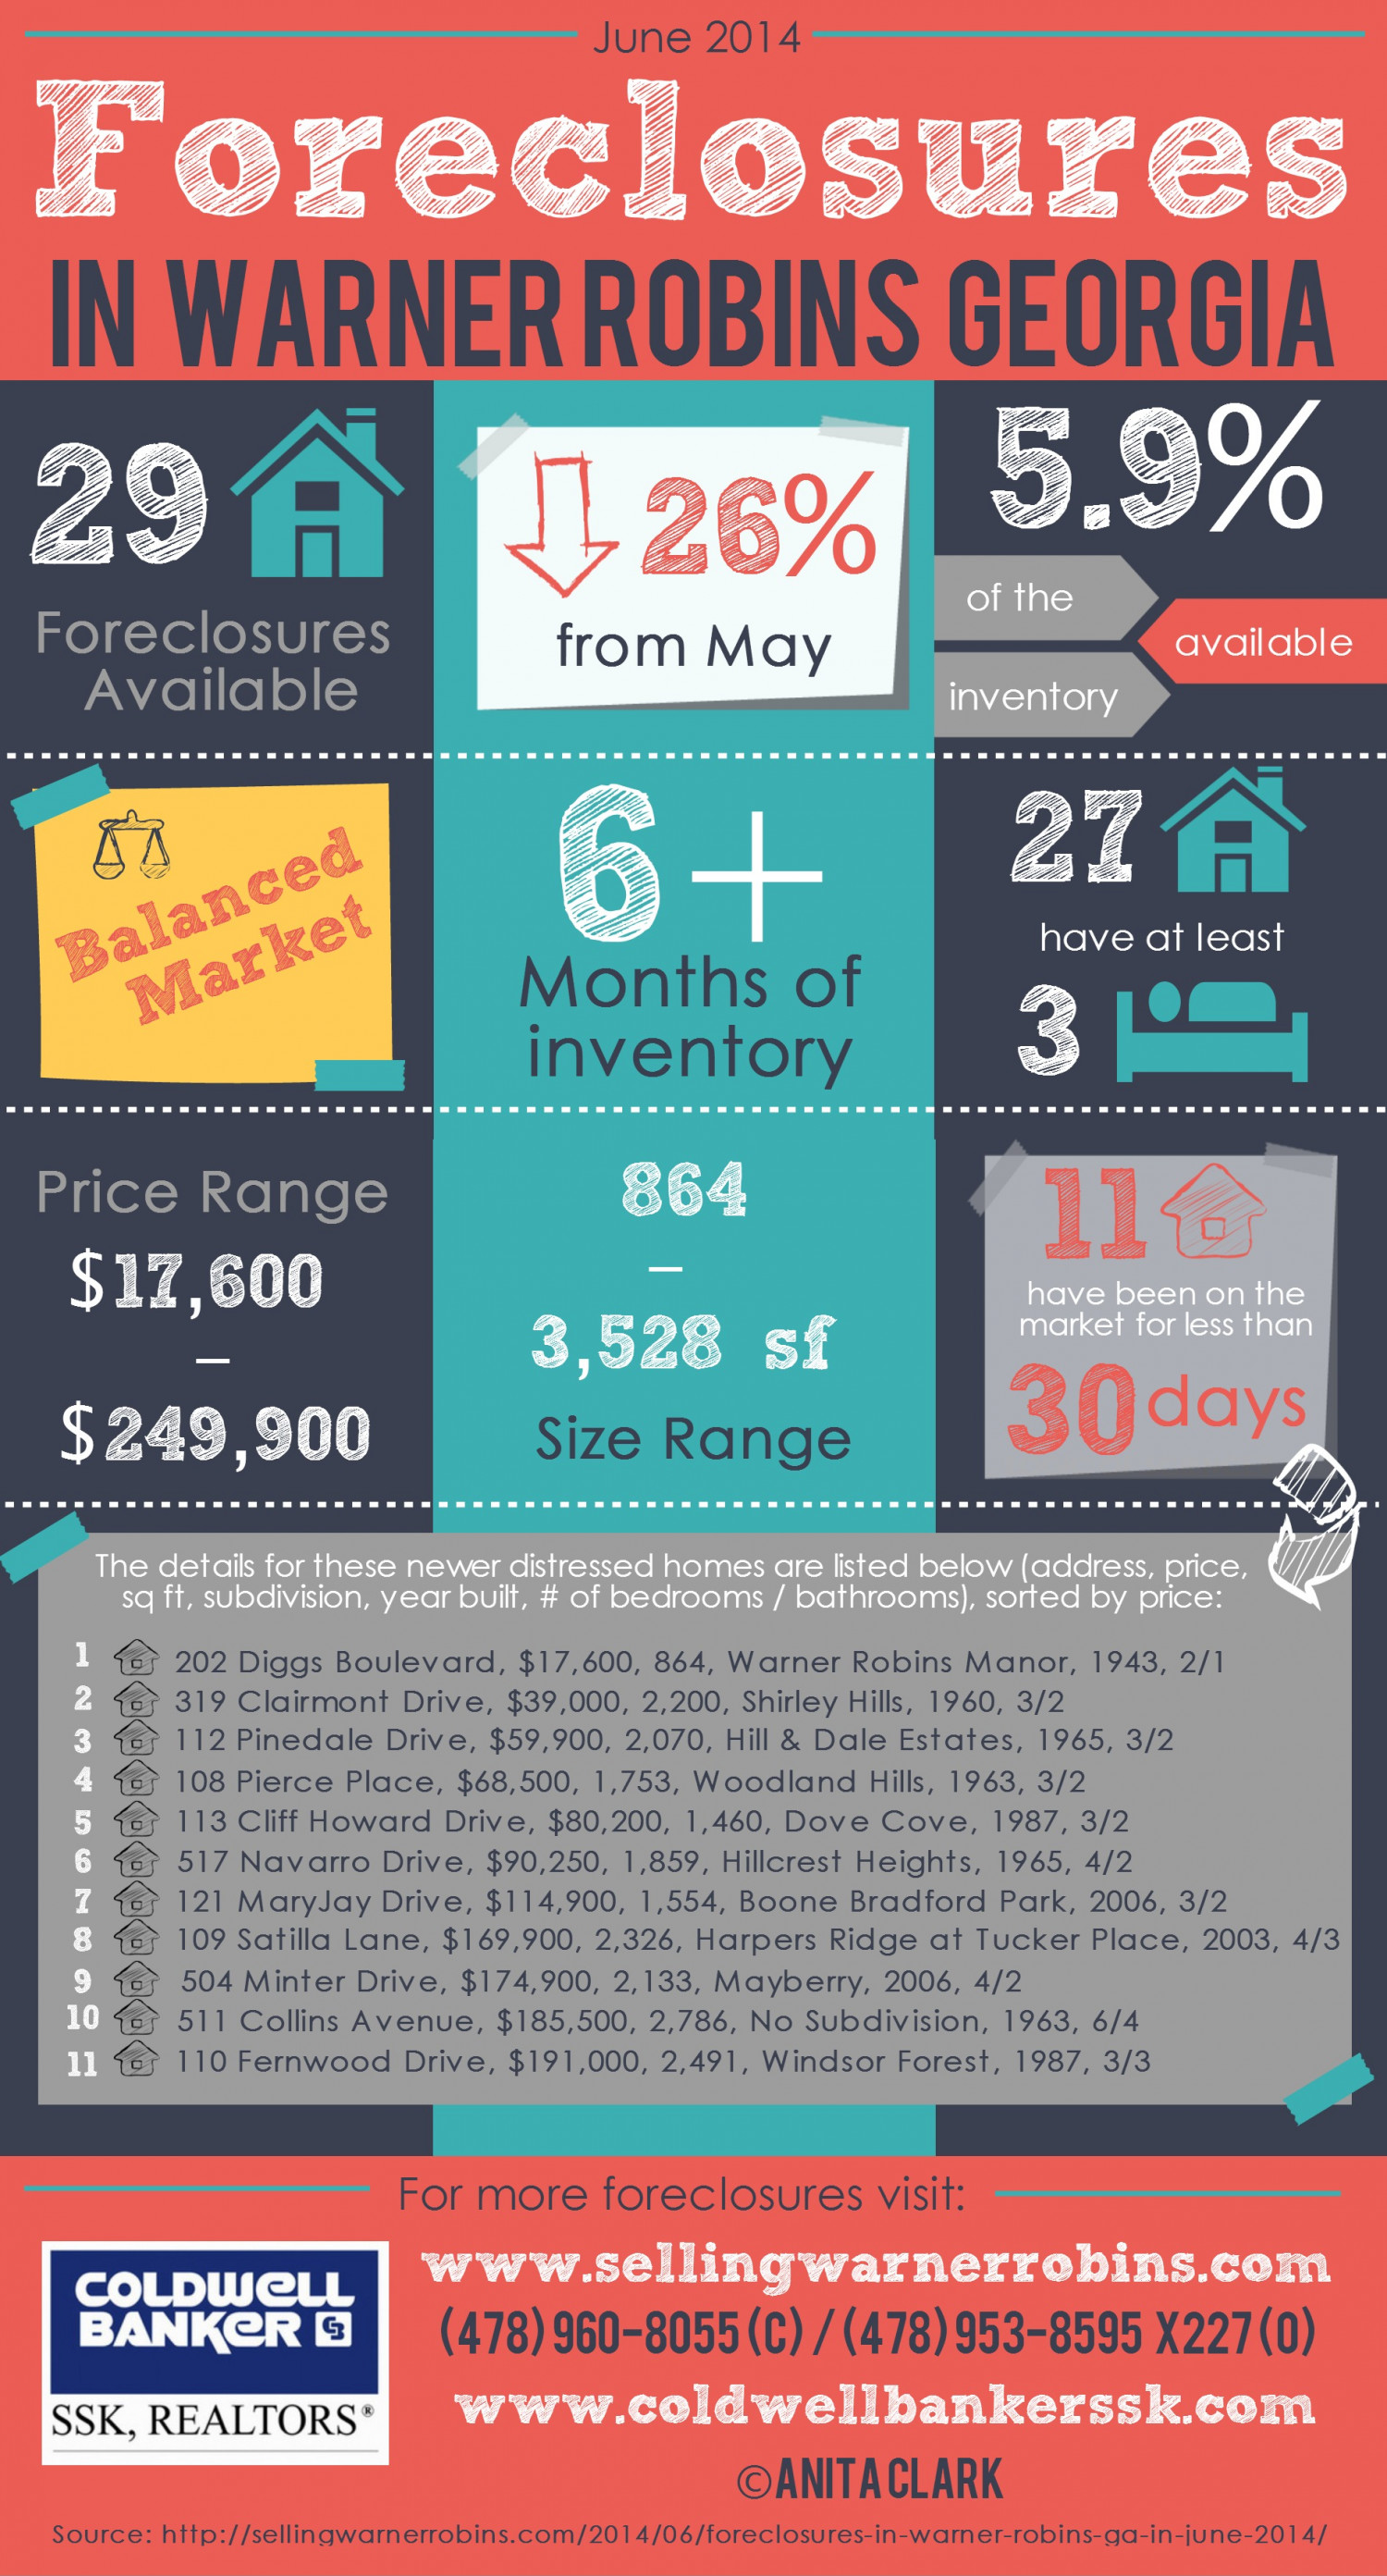 Foreclosures in Warner Robins GA for June 2014 Infographic